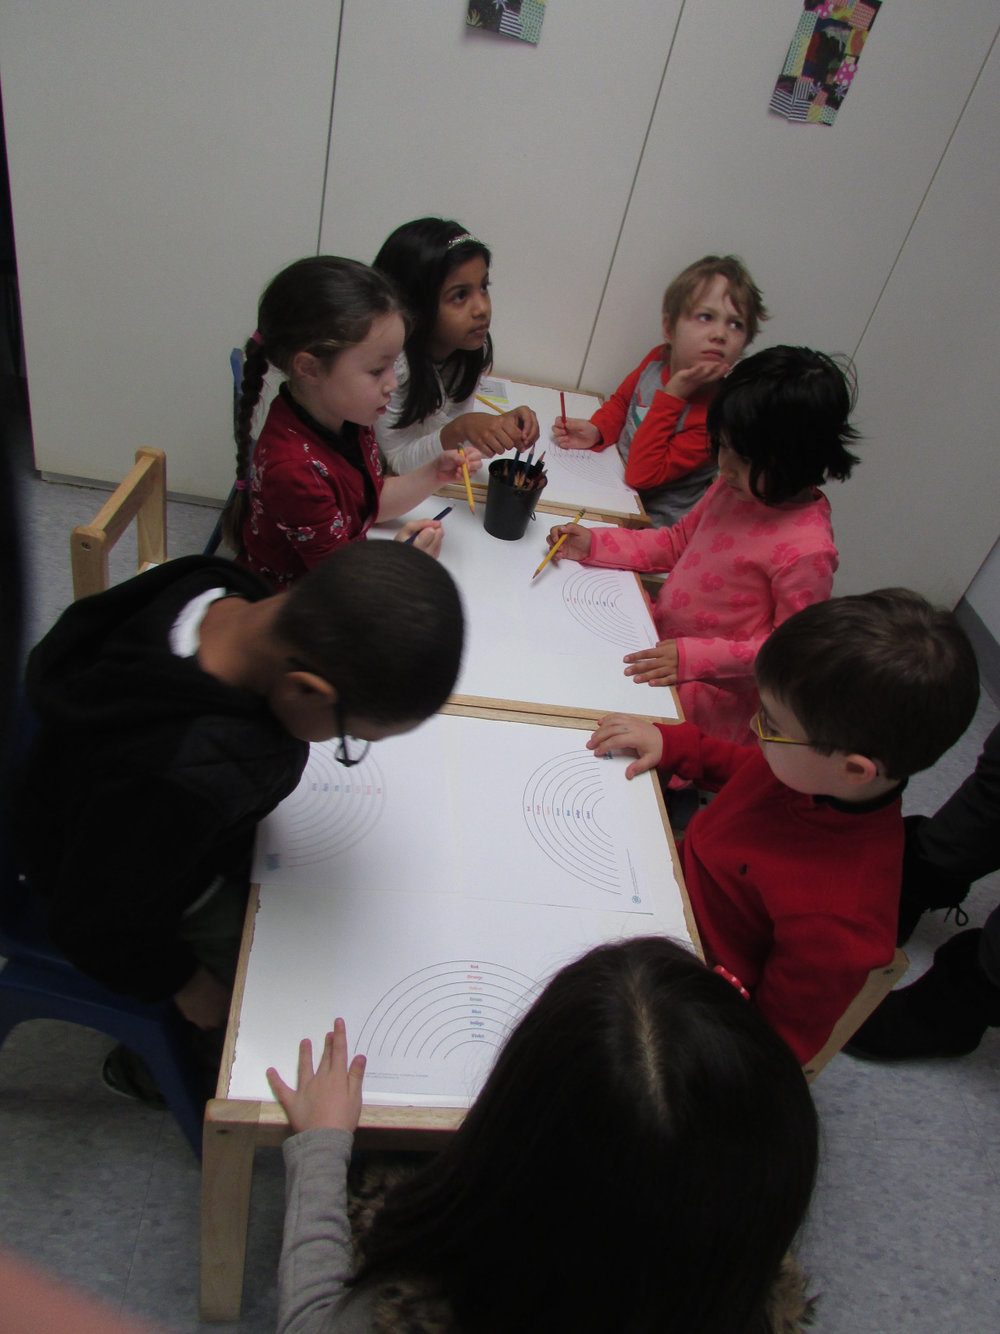 In this week's Kindergarten writing class, the students worked to creatively describe a given topic.  Some students described their magical sneakers, while others described a spooky house. They drew and decorated pictures and later, using sentence starters, wrote their own sentences describing their topics.